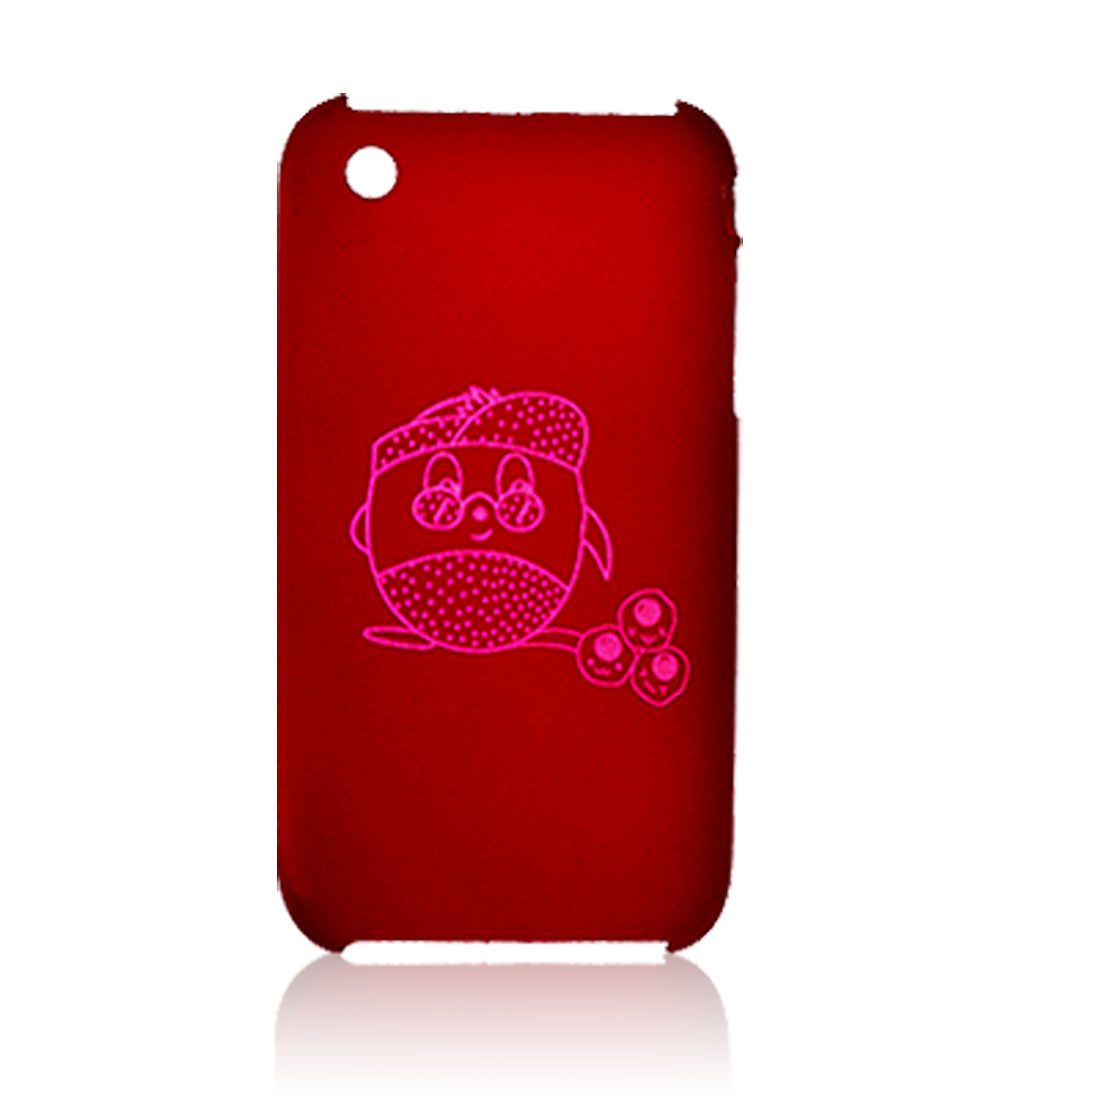 Rubberized Plastic Red Back Case for iPhone 3G w. Screen Guard